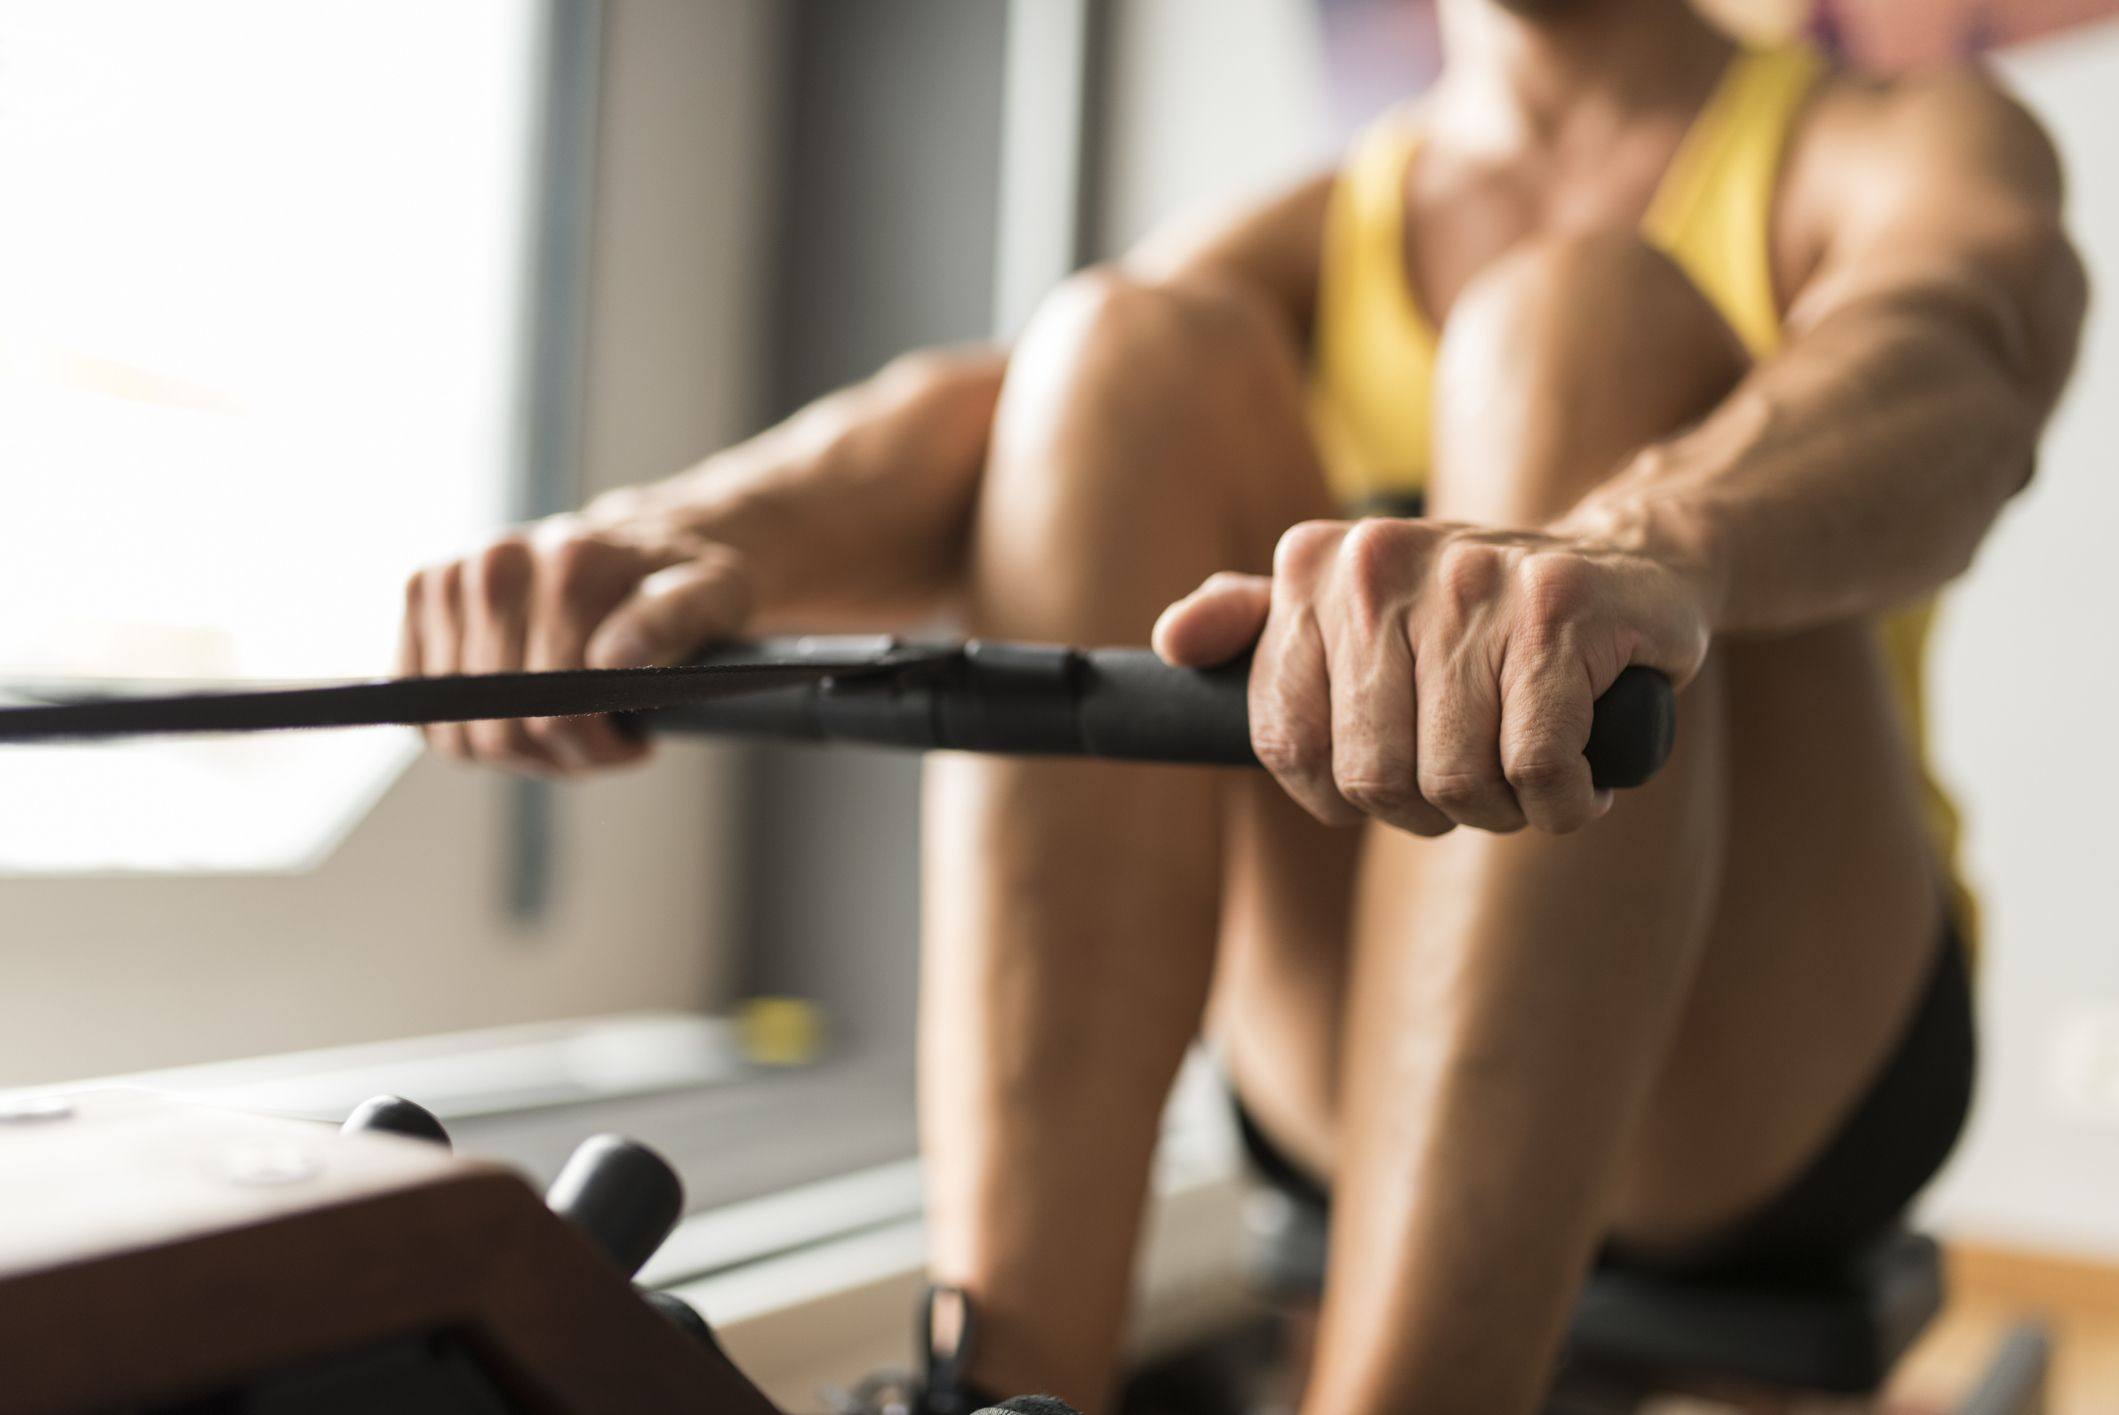 Rowing Machine Workouts | Rowing Workouts for Cross-Training